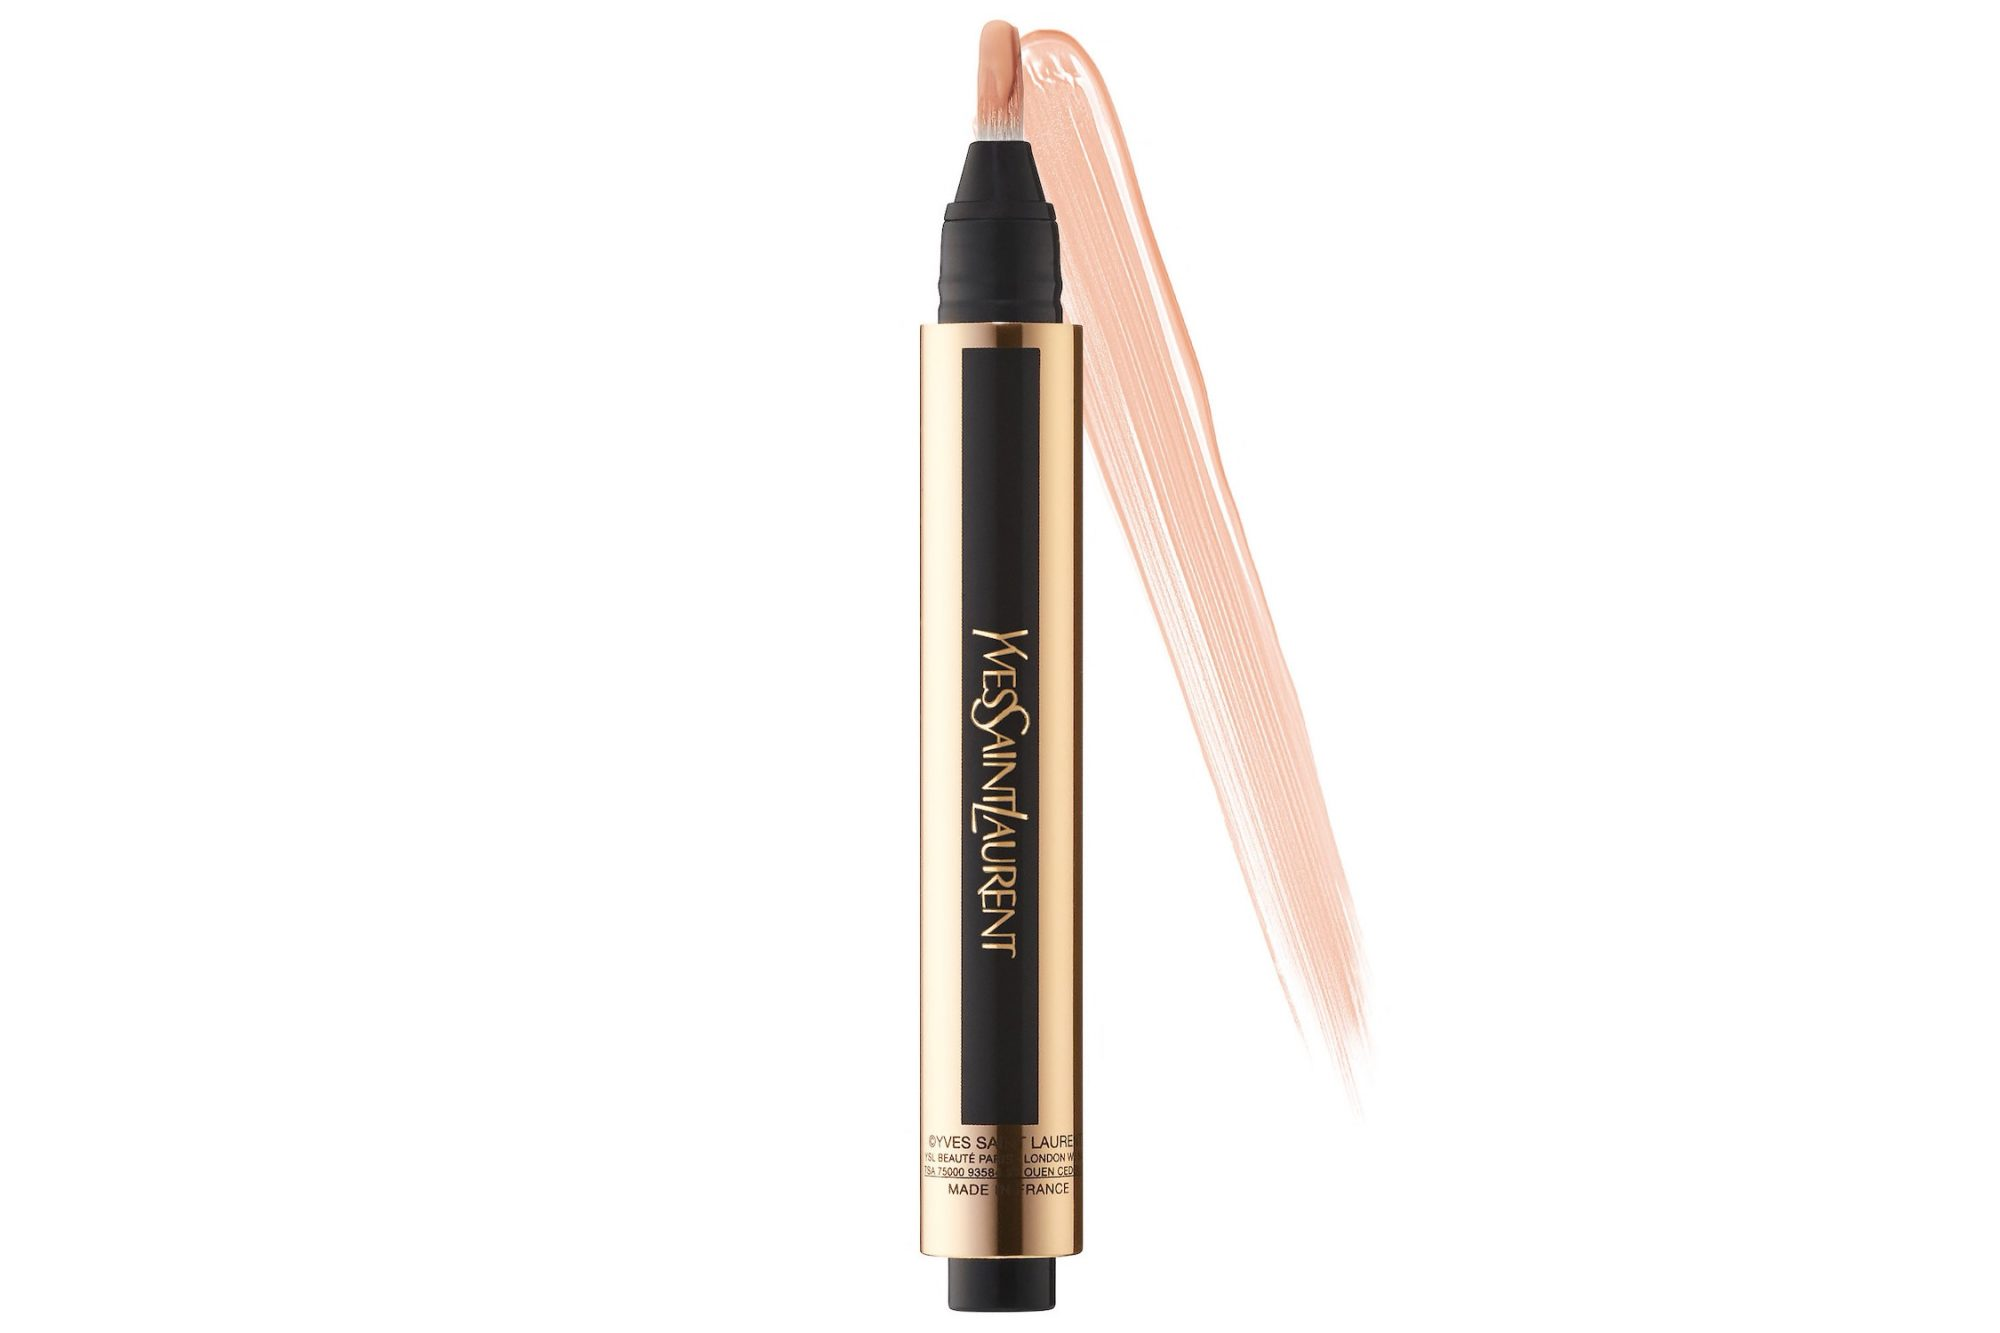 iconic-beauty-products-ysl.jpg